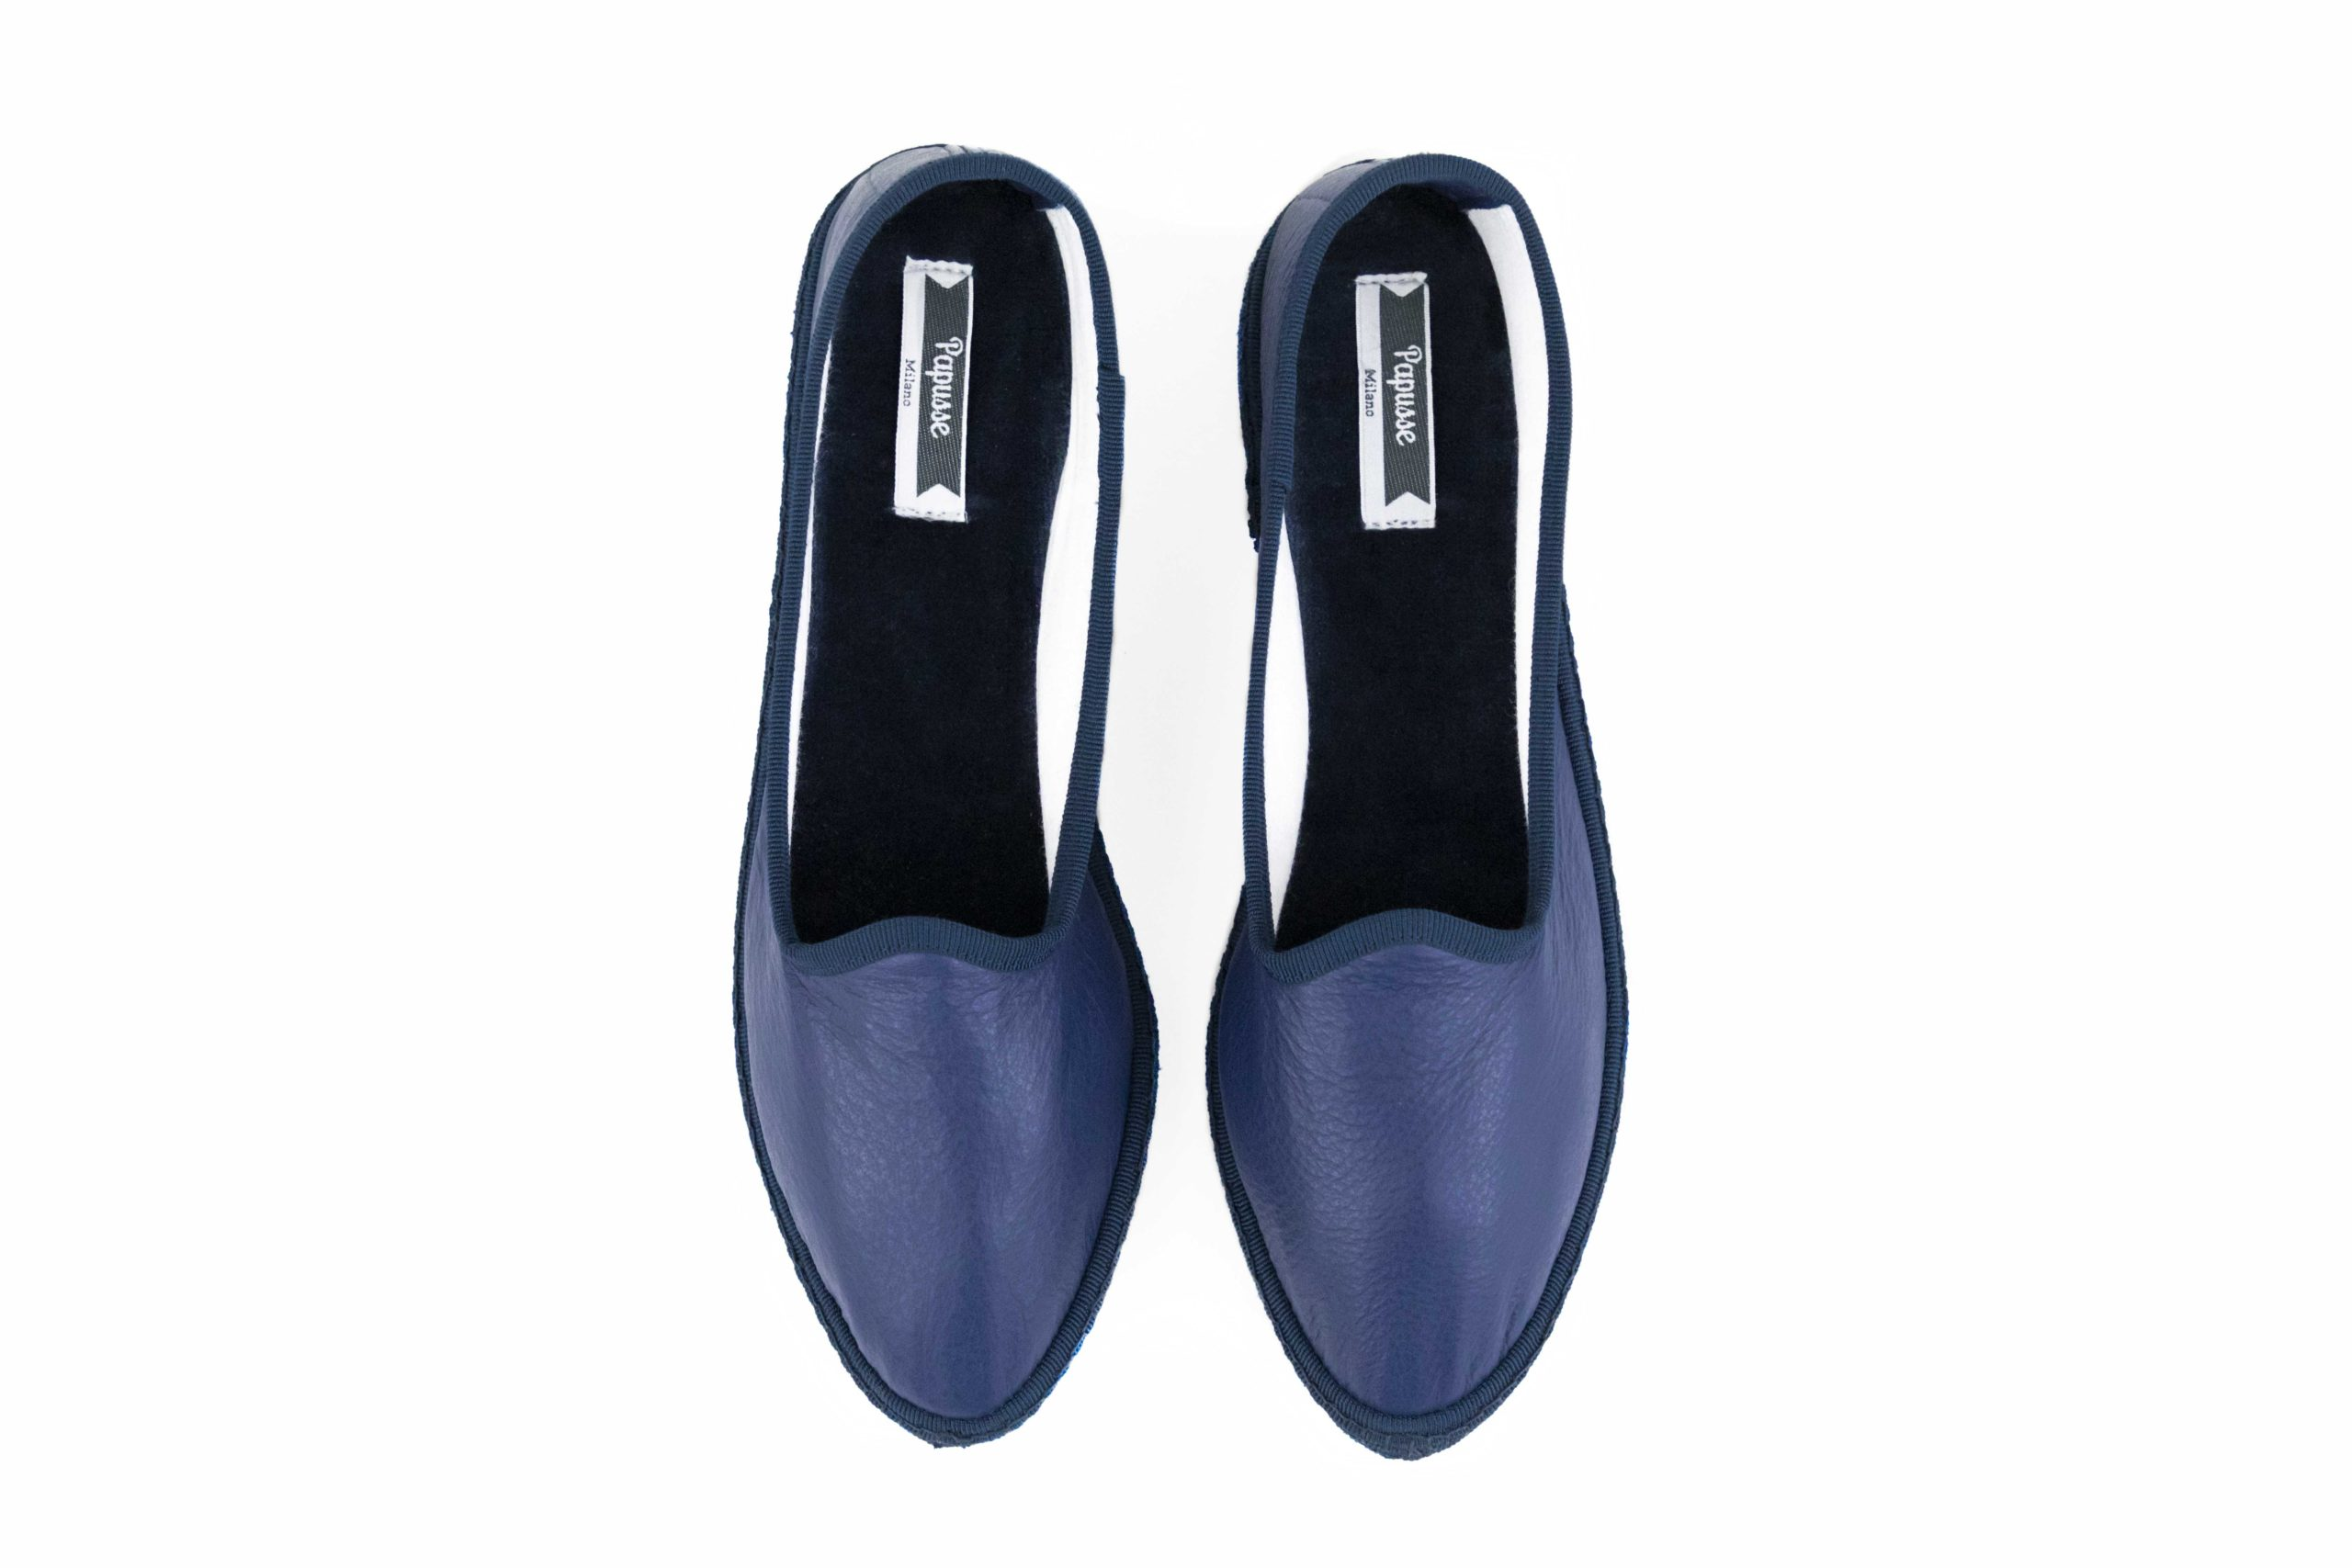 slippers_pelle_Mare_top